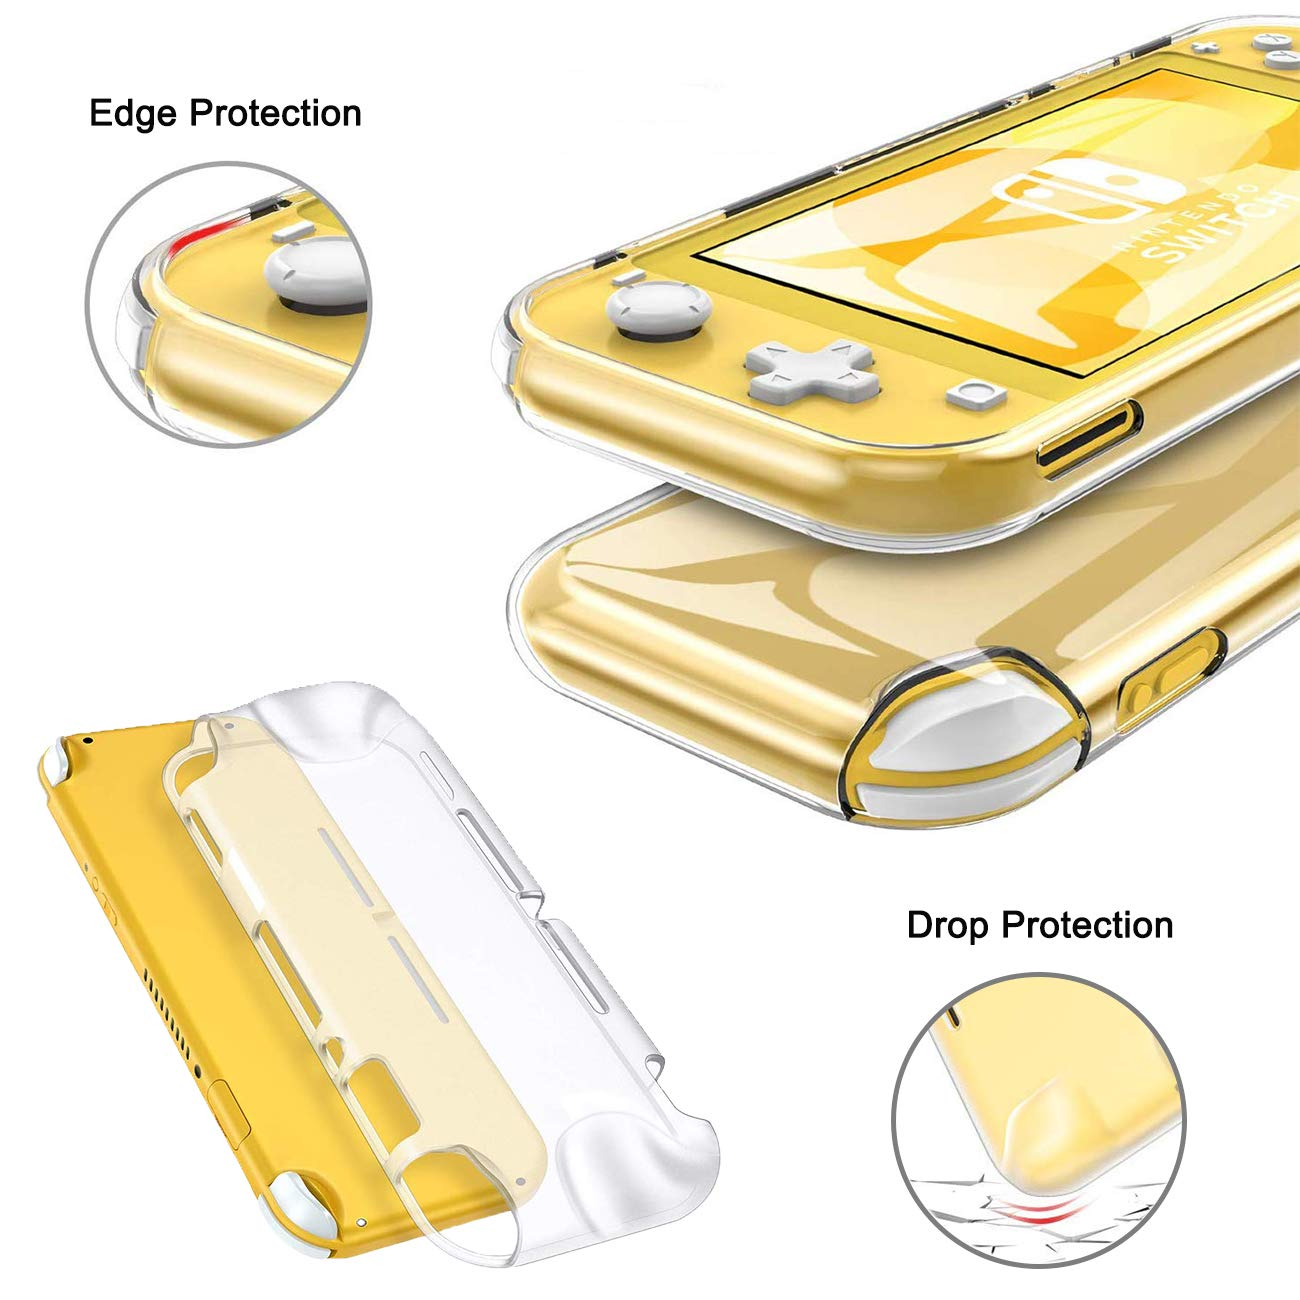 Accessories Kit 9 in 1 for Nintendo Switch Lite, Carrying Case for Switch Lite Come with 8 Game Cartridge, Clear TPU Cover Case, 2.5D Tempered Glass Screen Protector, 4 Pack Thumb-Grip for Switch Lite